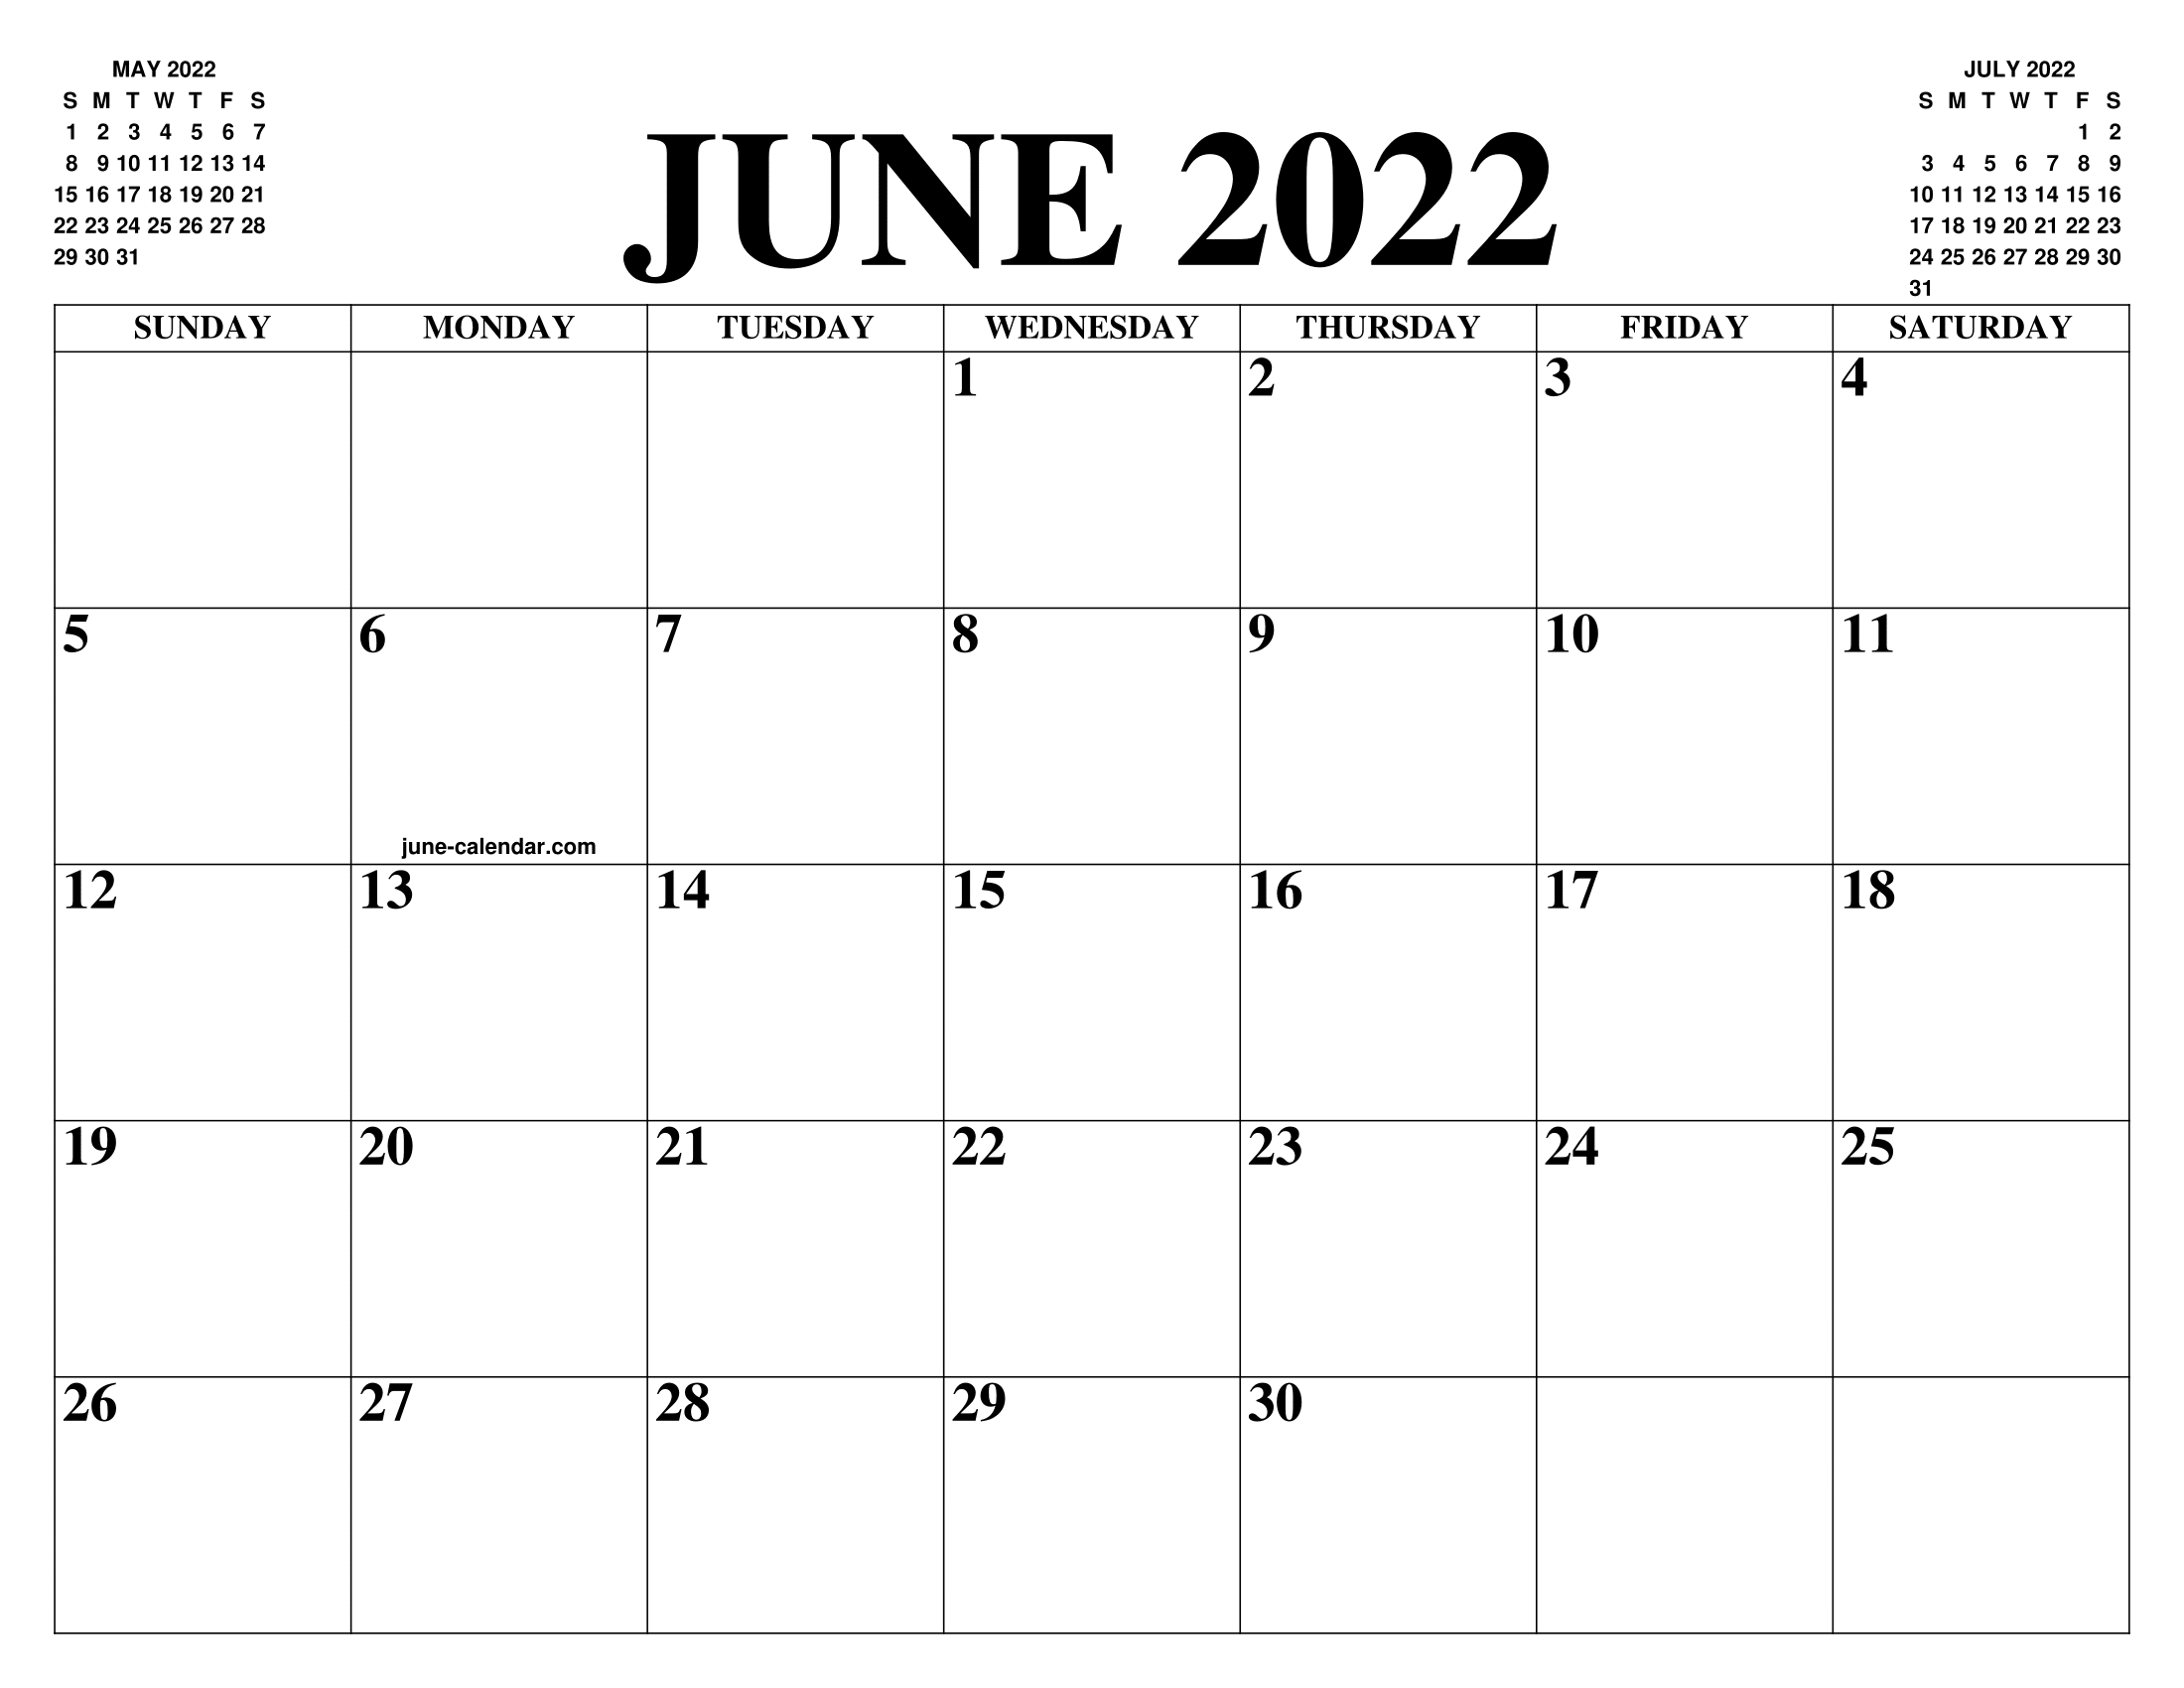 image regarding 2022 Calendar Printable identify JUNE 2022 CALENDAR OF THE Thirty day period: Cost-free PRINTABLE JUNE